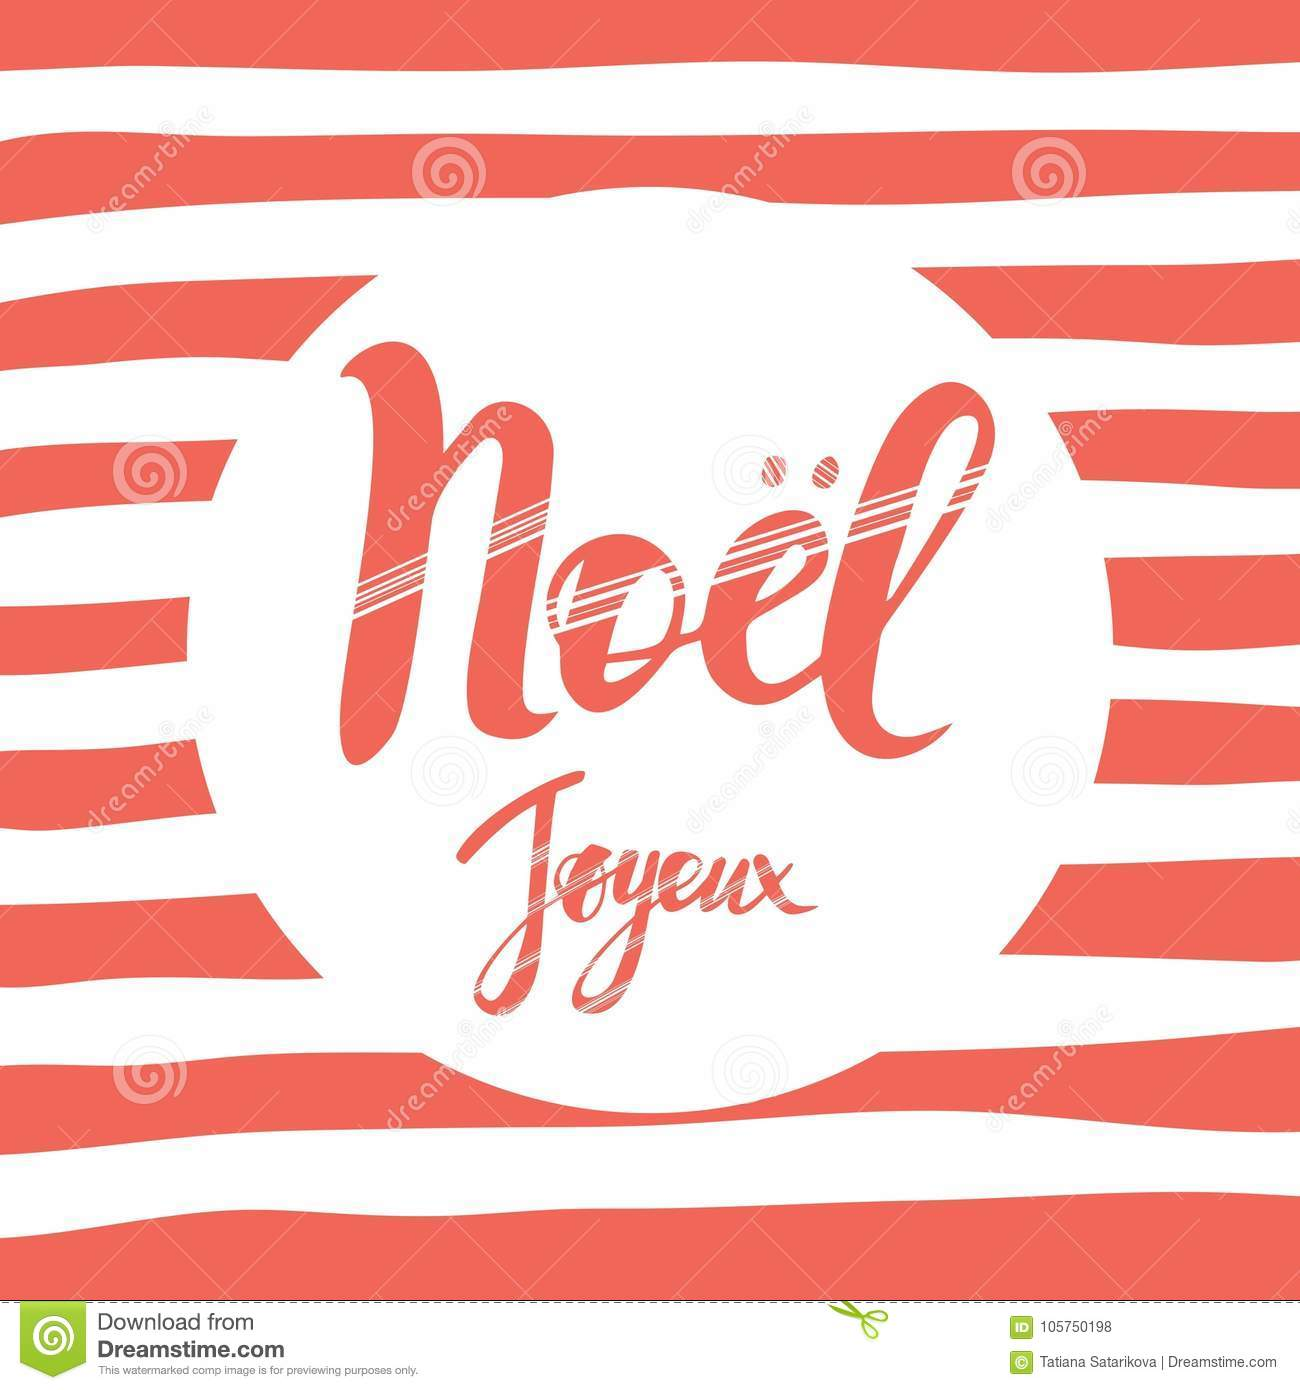 Merry Christmas Card Design With Greetings In French Language